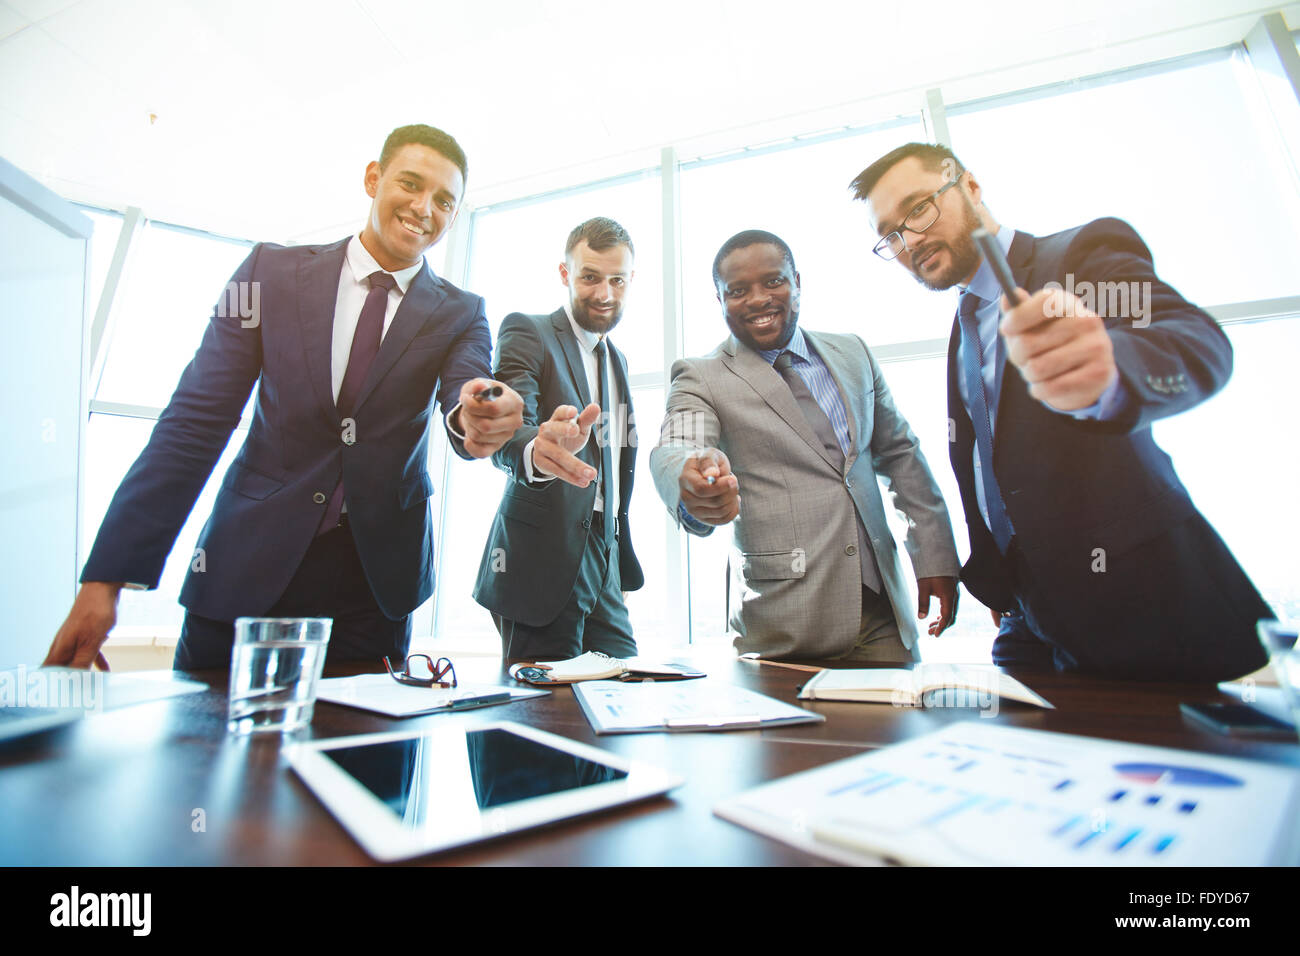 Elegant businessmen offering you pens to sign contract - Stock Image